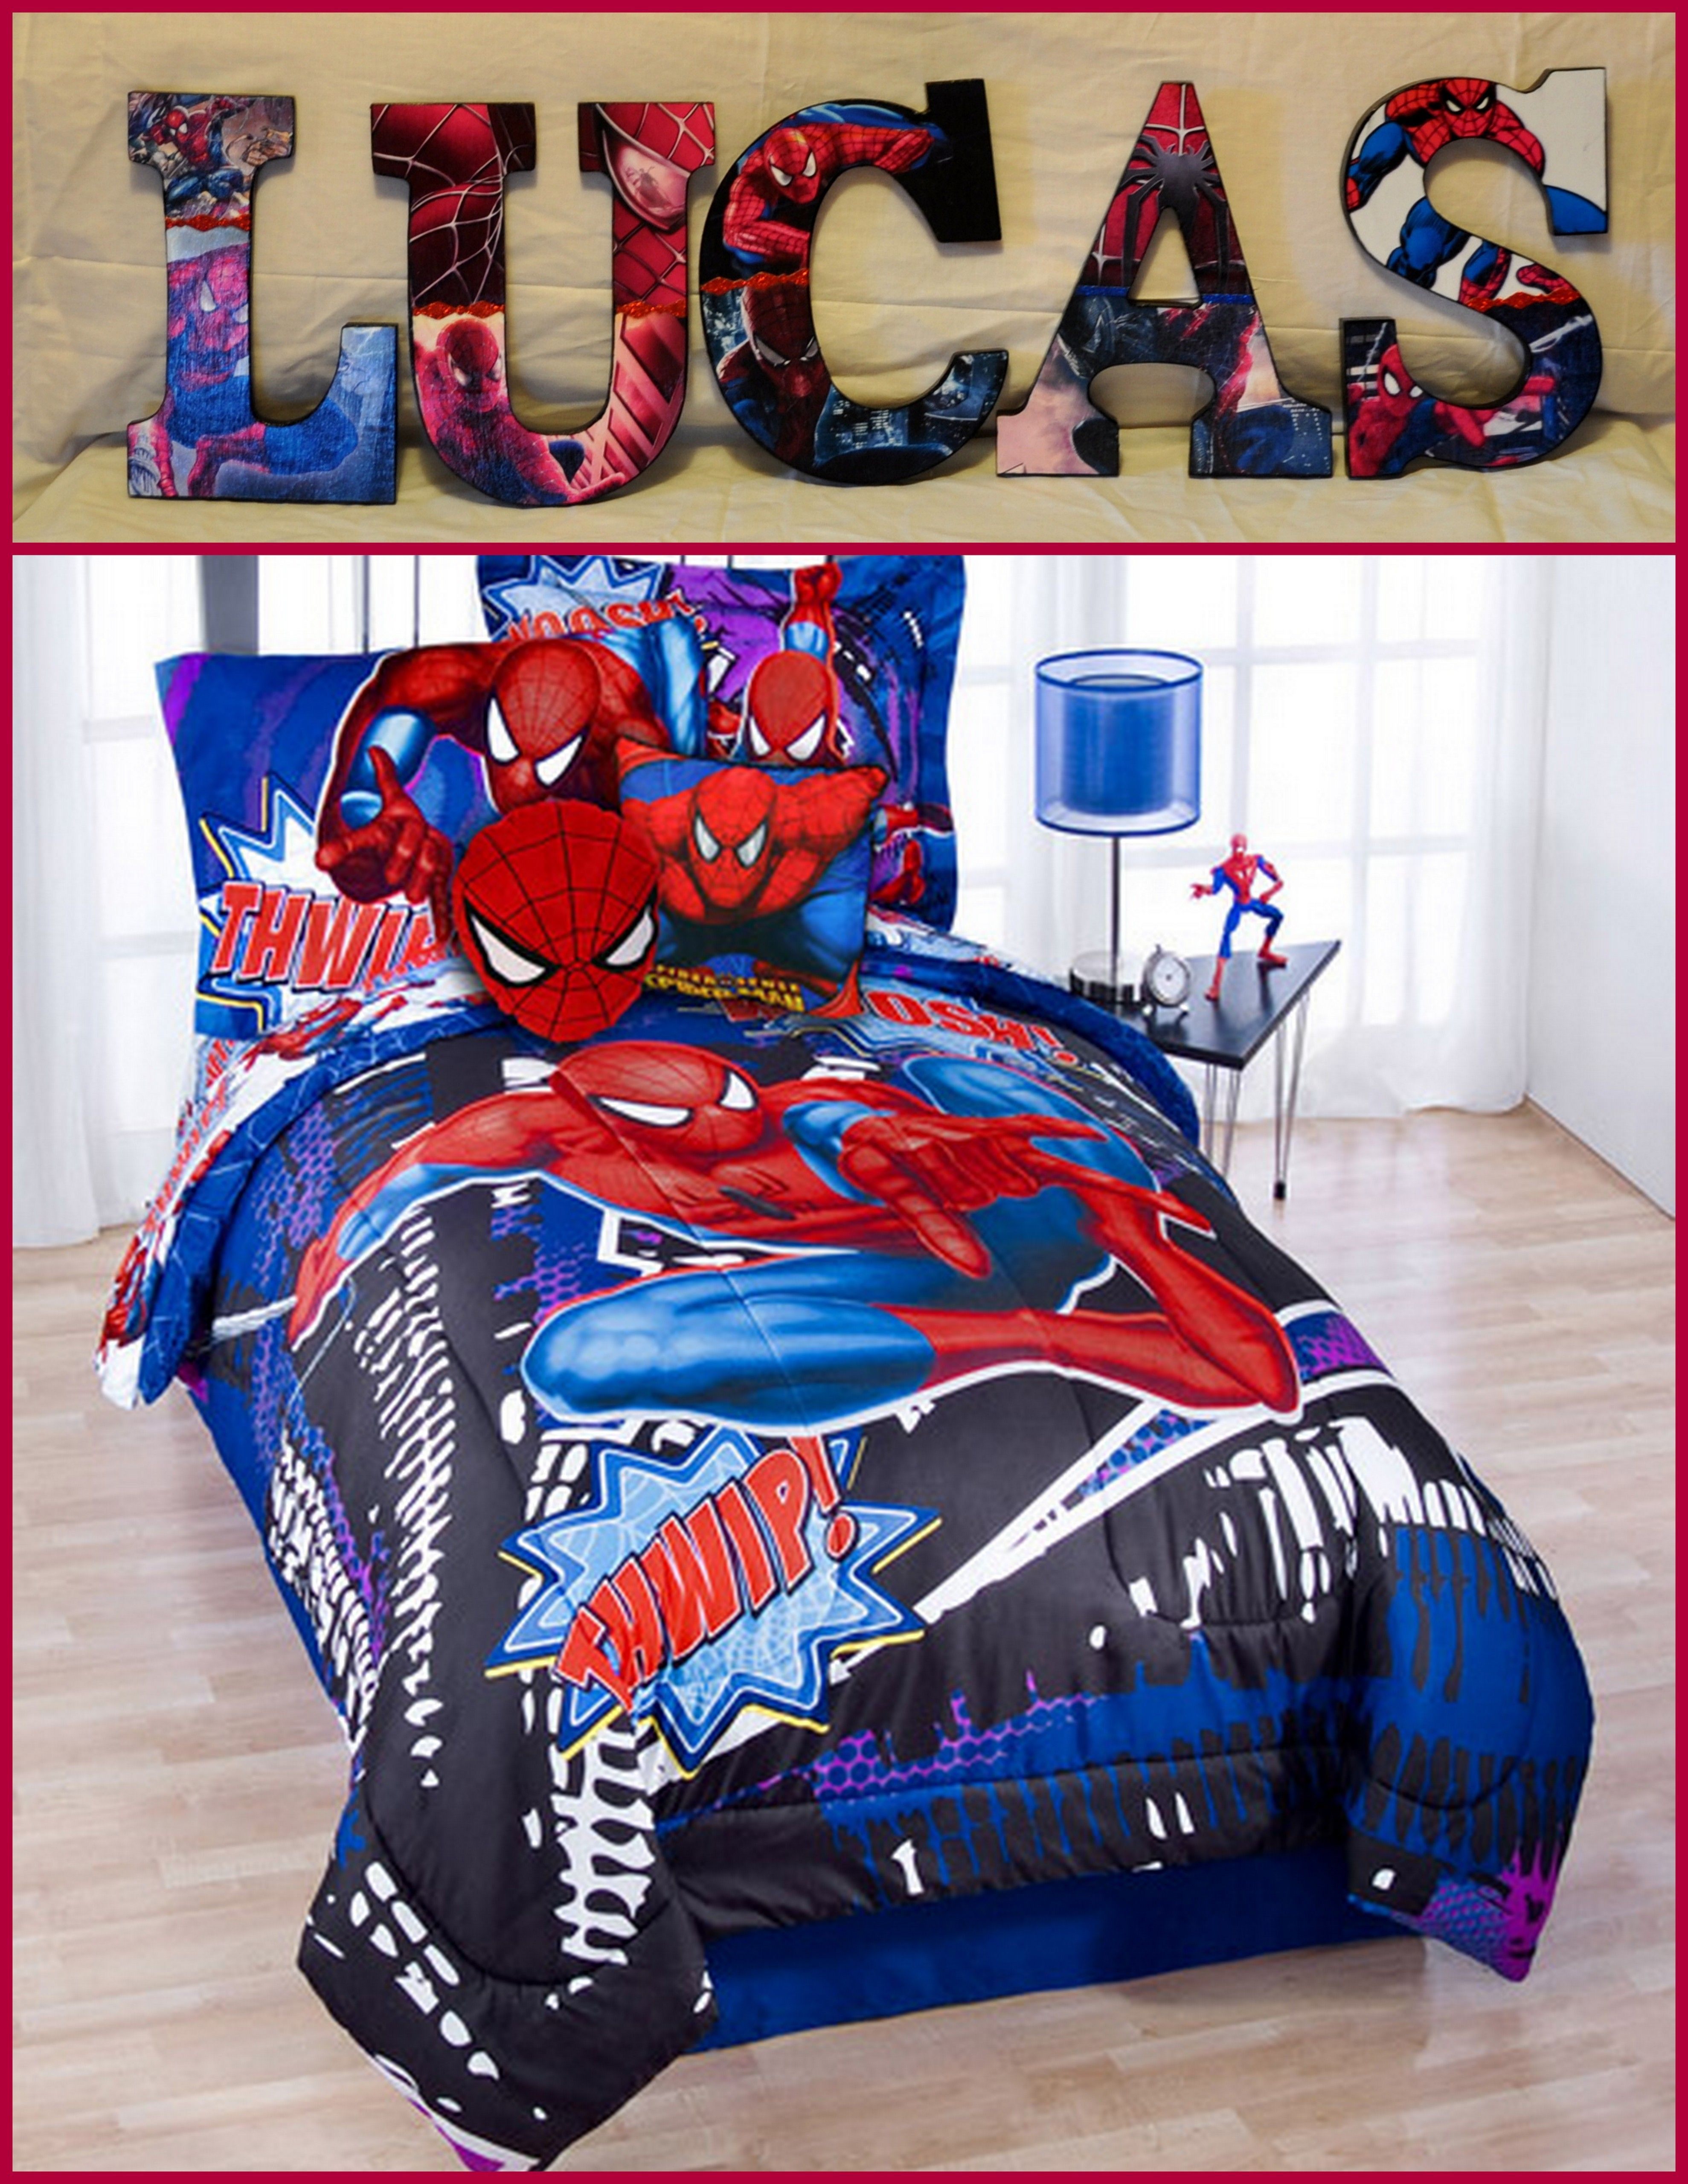 "Spiderman Inspired Personalize your child's room or any room 9"" Wooden Letters with Drilled holes in the back for easy hanging. Can do any theme, They are adorable and can finish any room. Can match bedding with good pic perfect. I can even do your photo's for memories or a family one with your family photo's. They are great for shower gifts, birthday gifts or just anyday gifts. Can match any bedding theme. $9.50 per letter - $9.50"